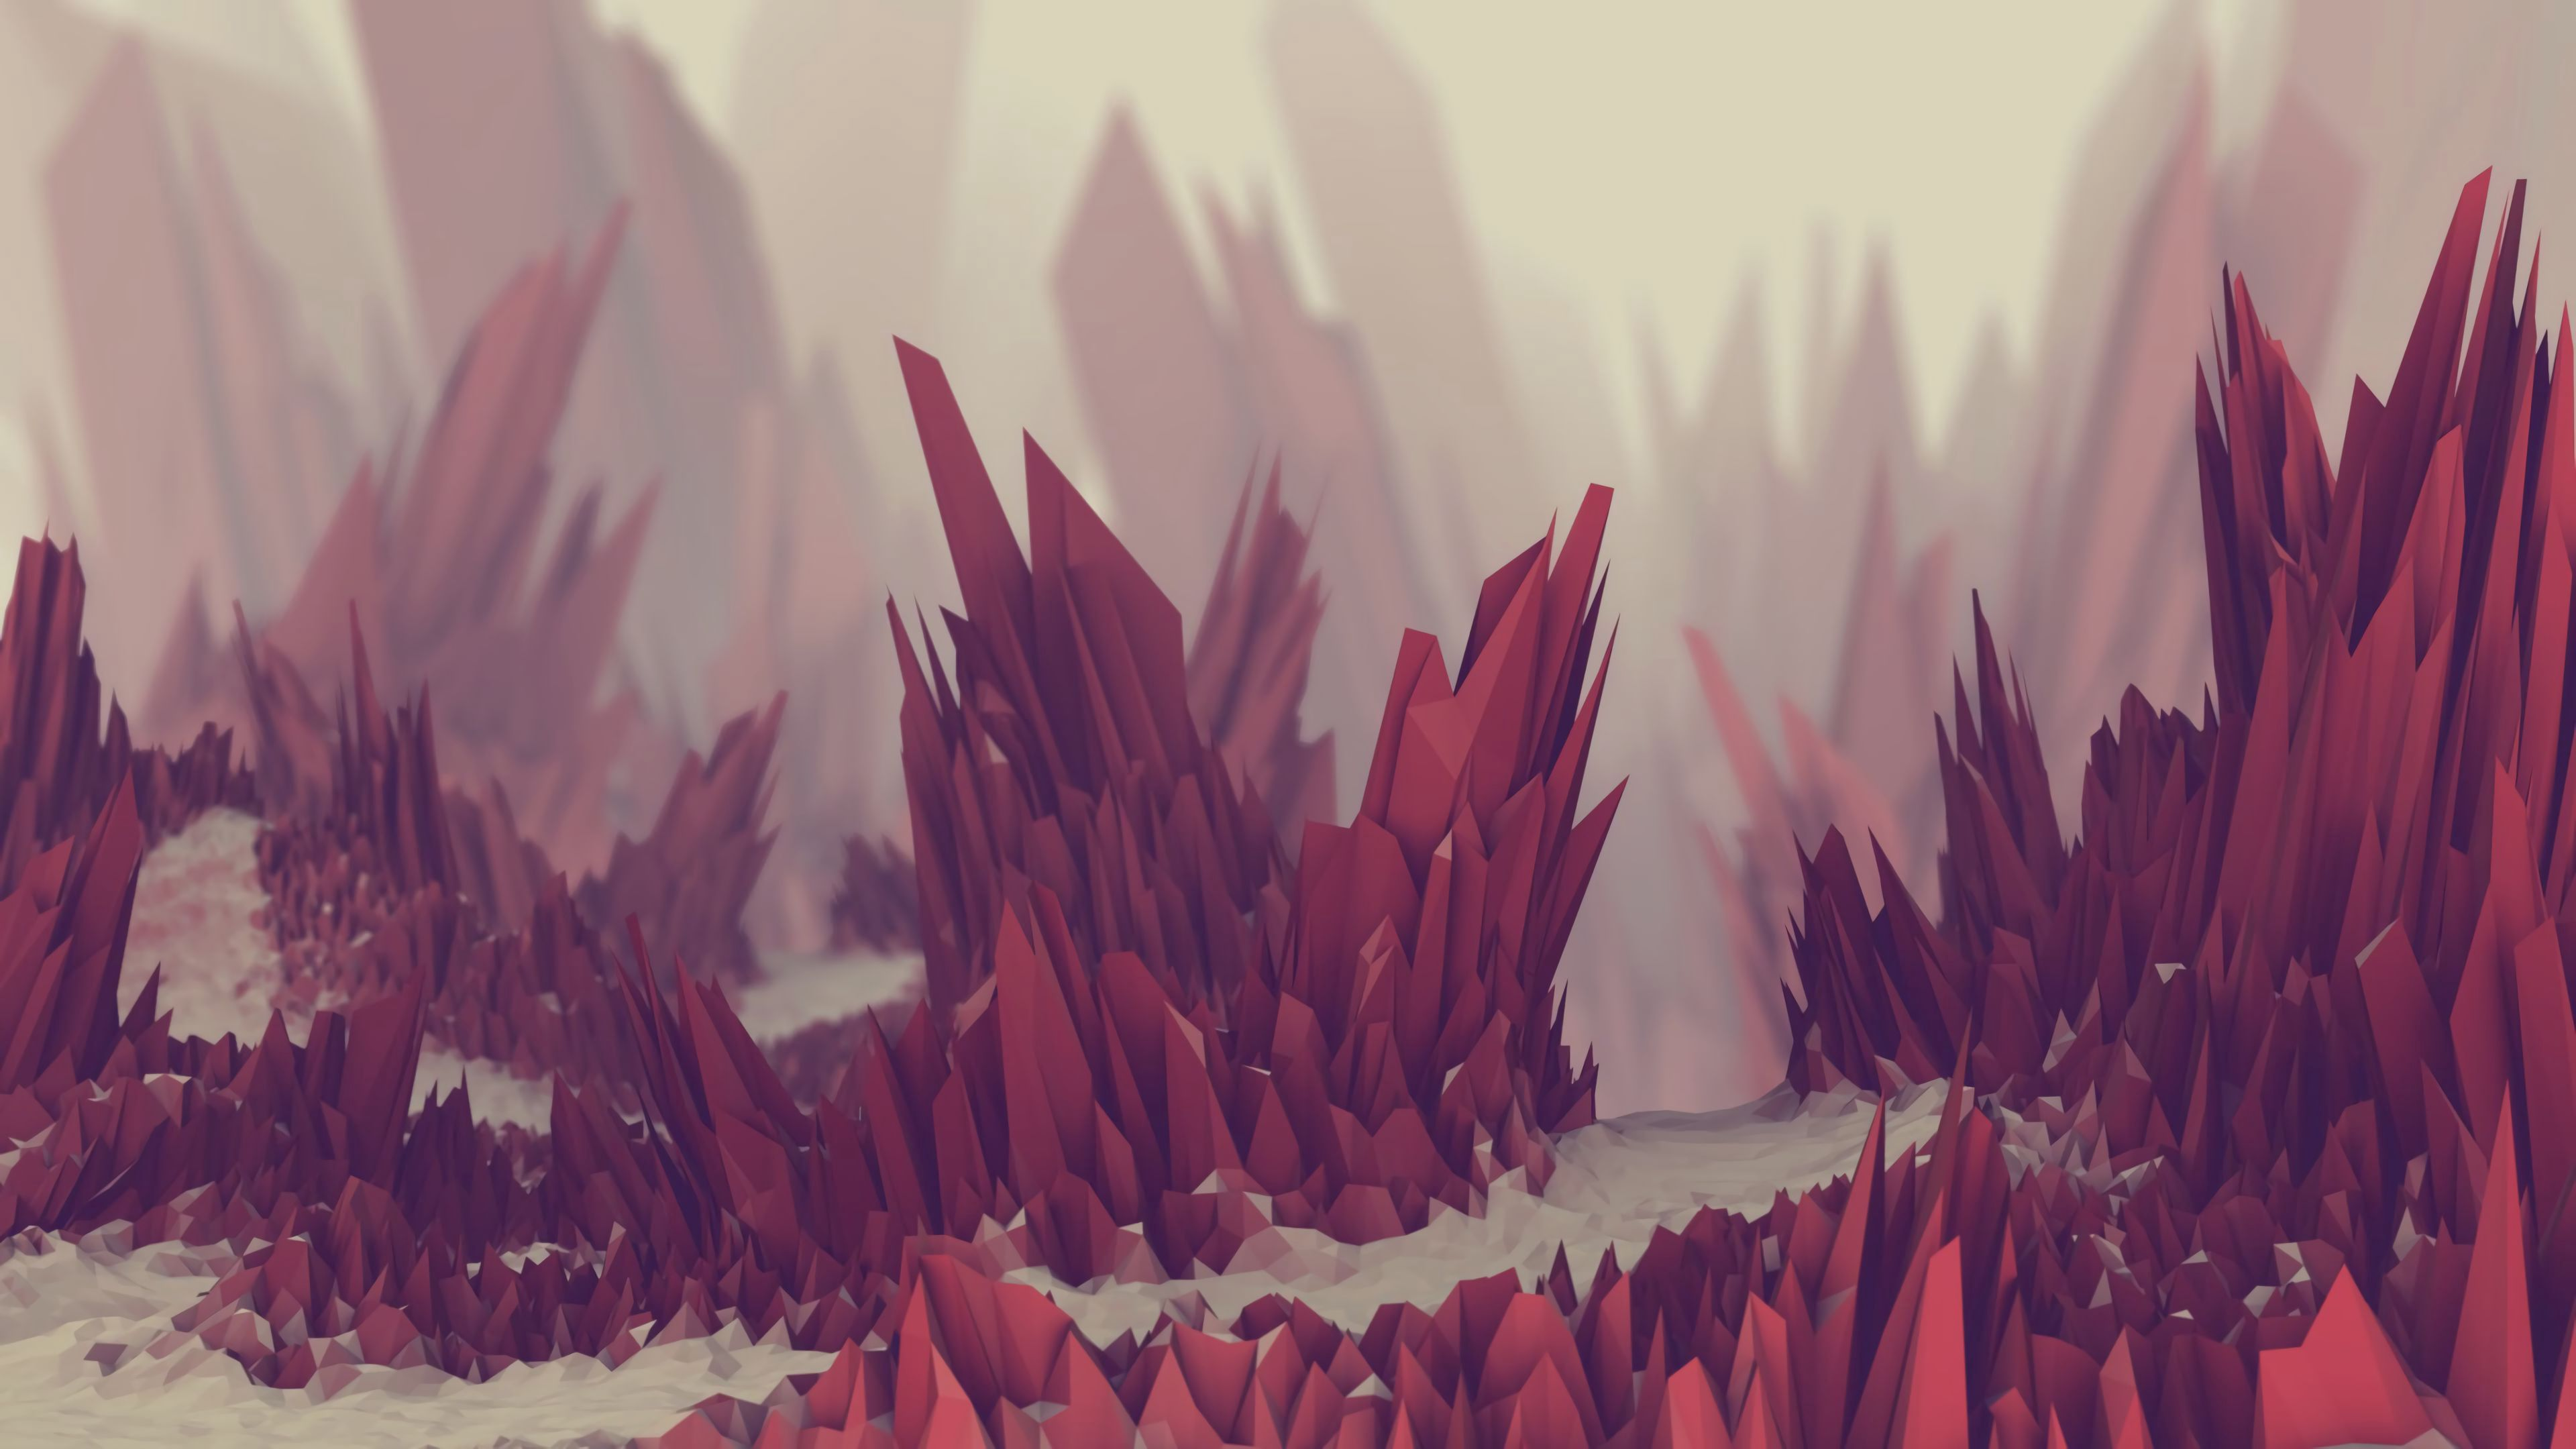 143954 download wallpaper 3D, Barbed, Spiny, Crystals screensavers and pictures for free